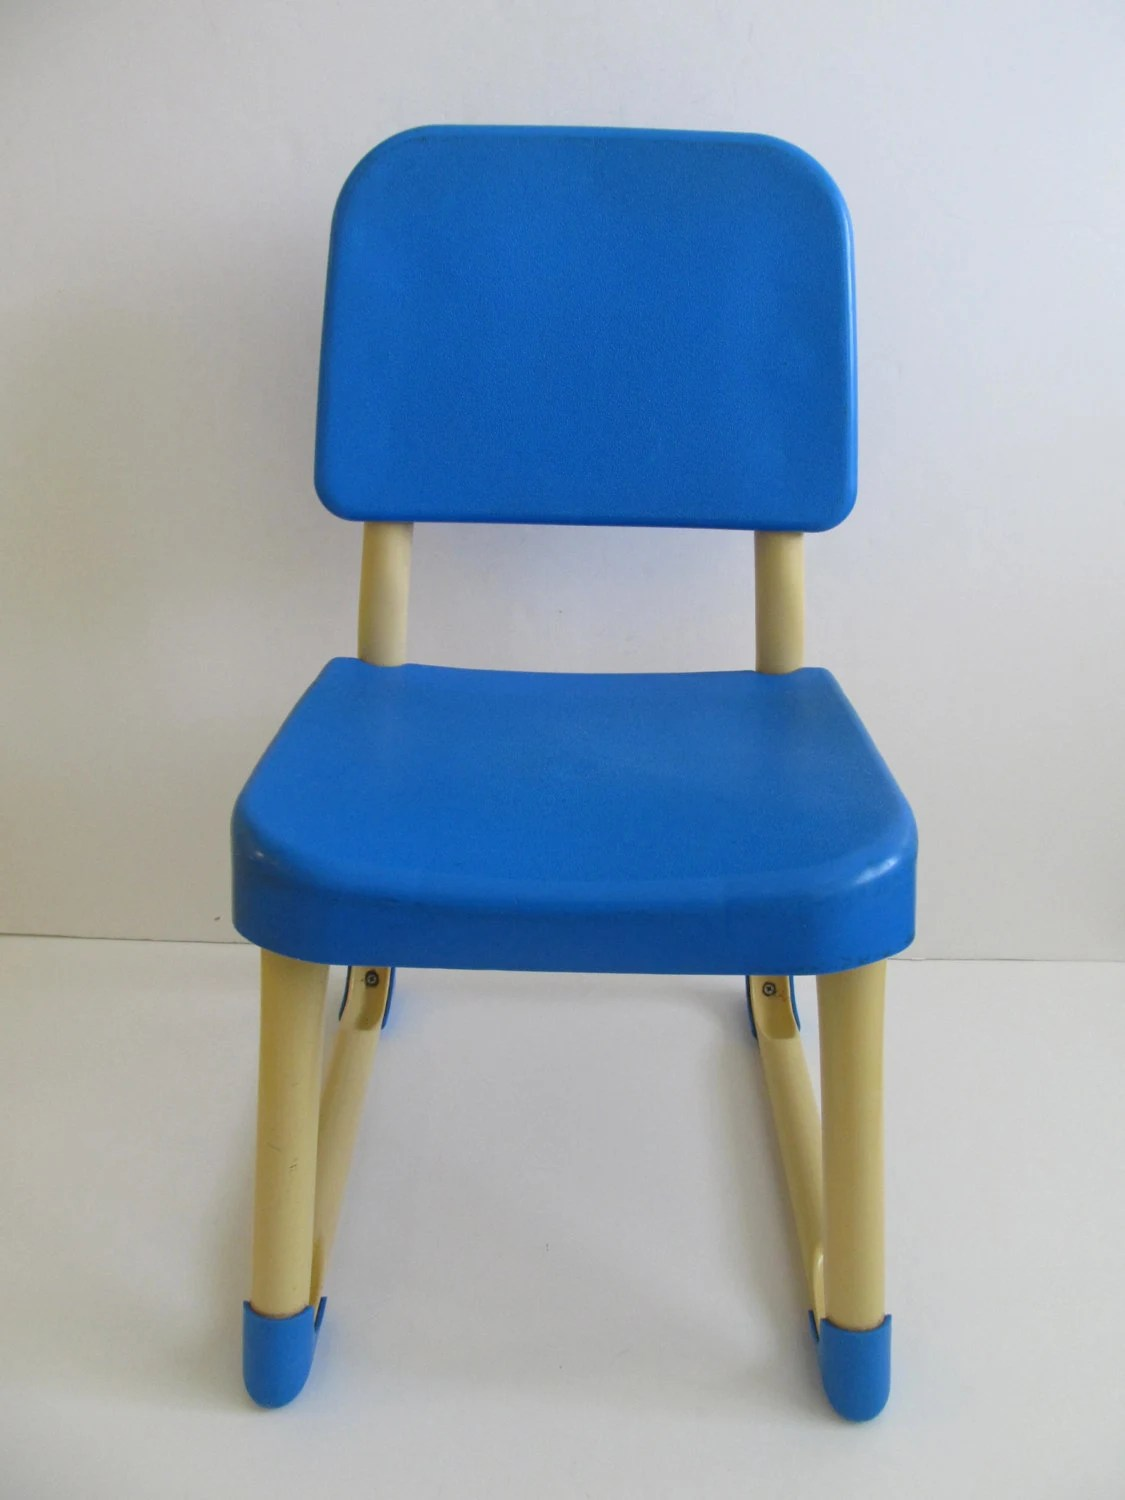 Fisher Price Chair Chairs Childrens Chairs by MaggiesCellar